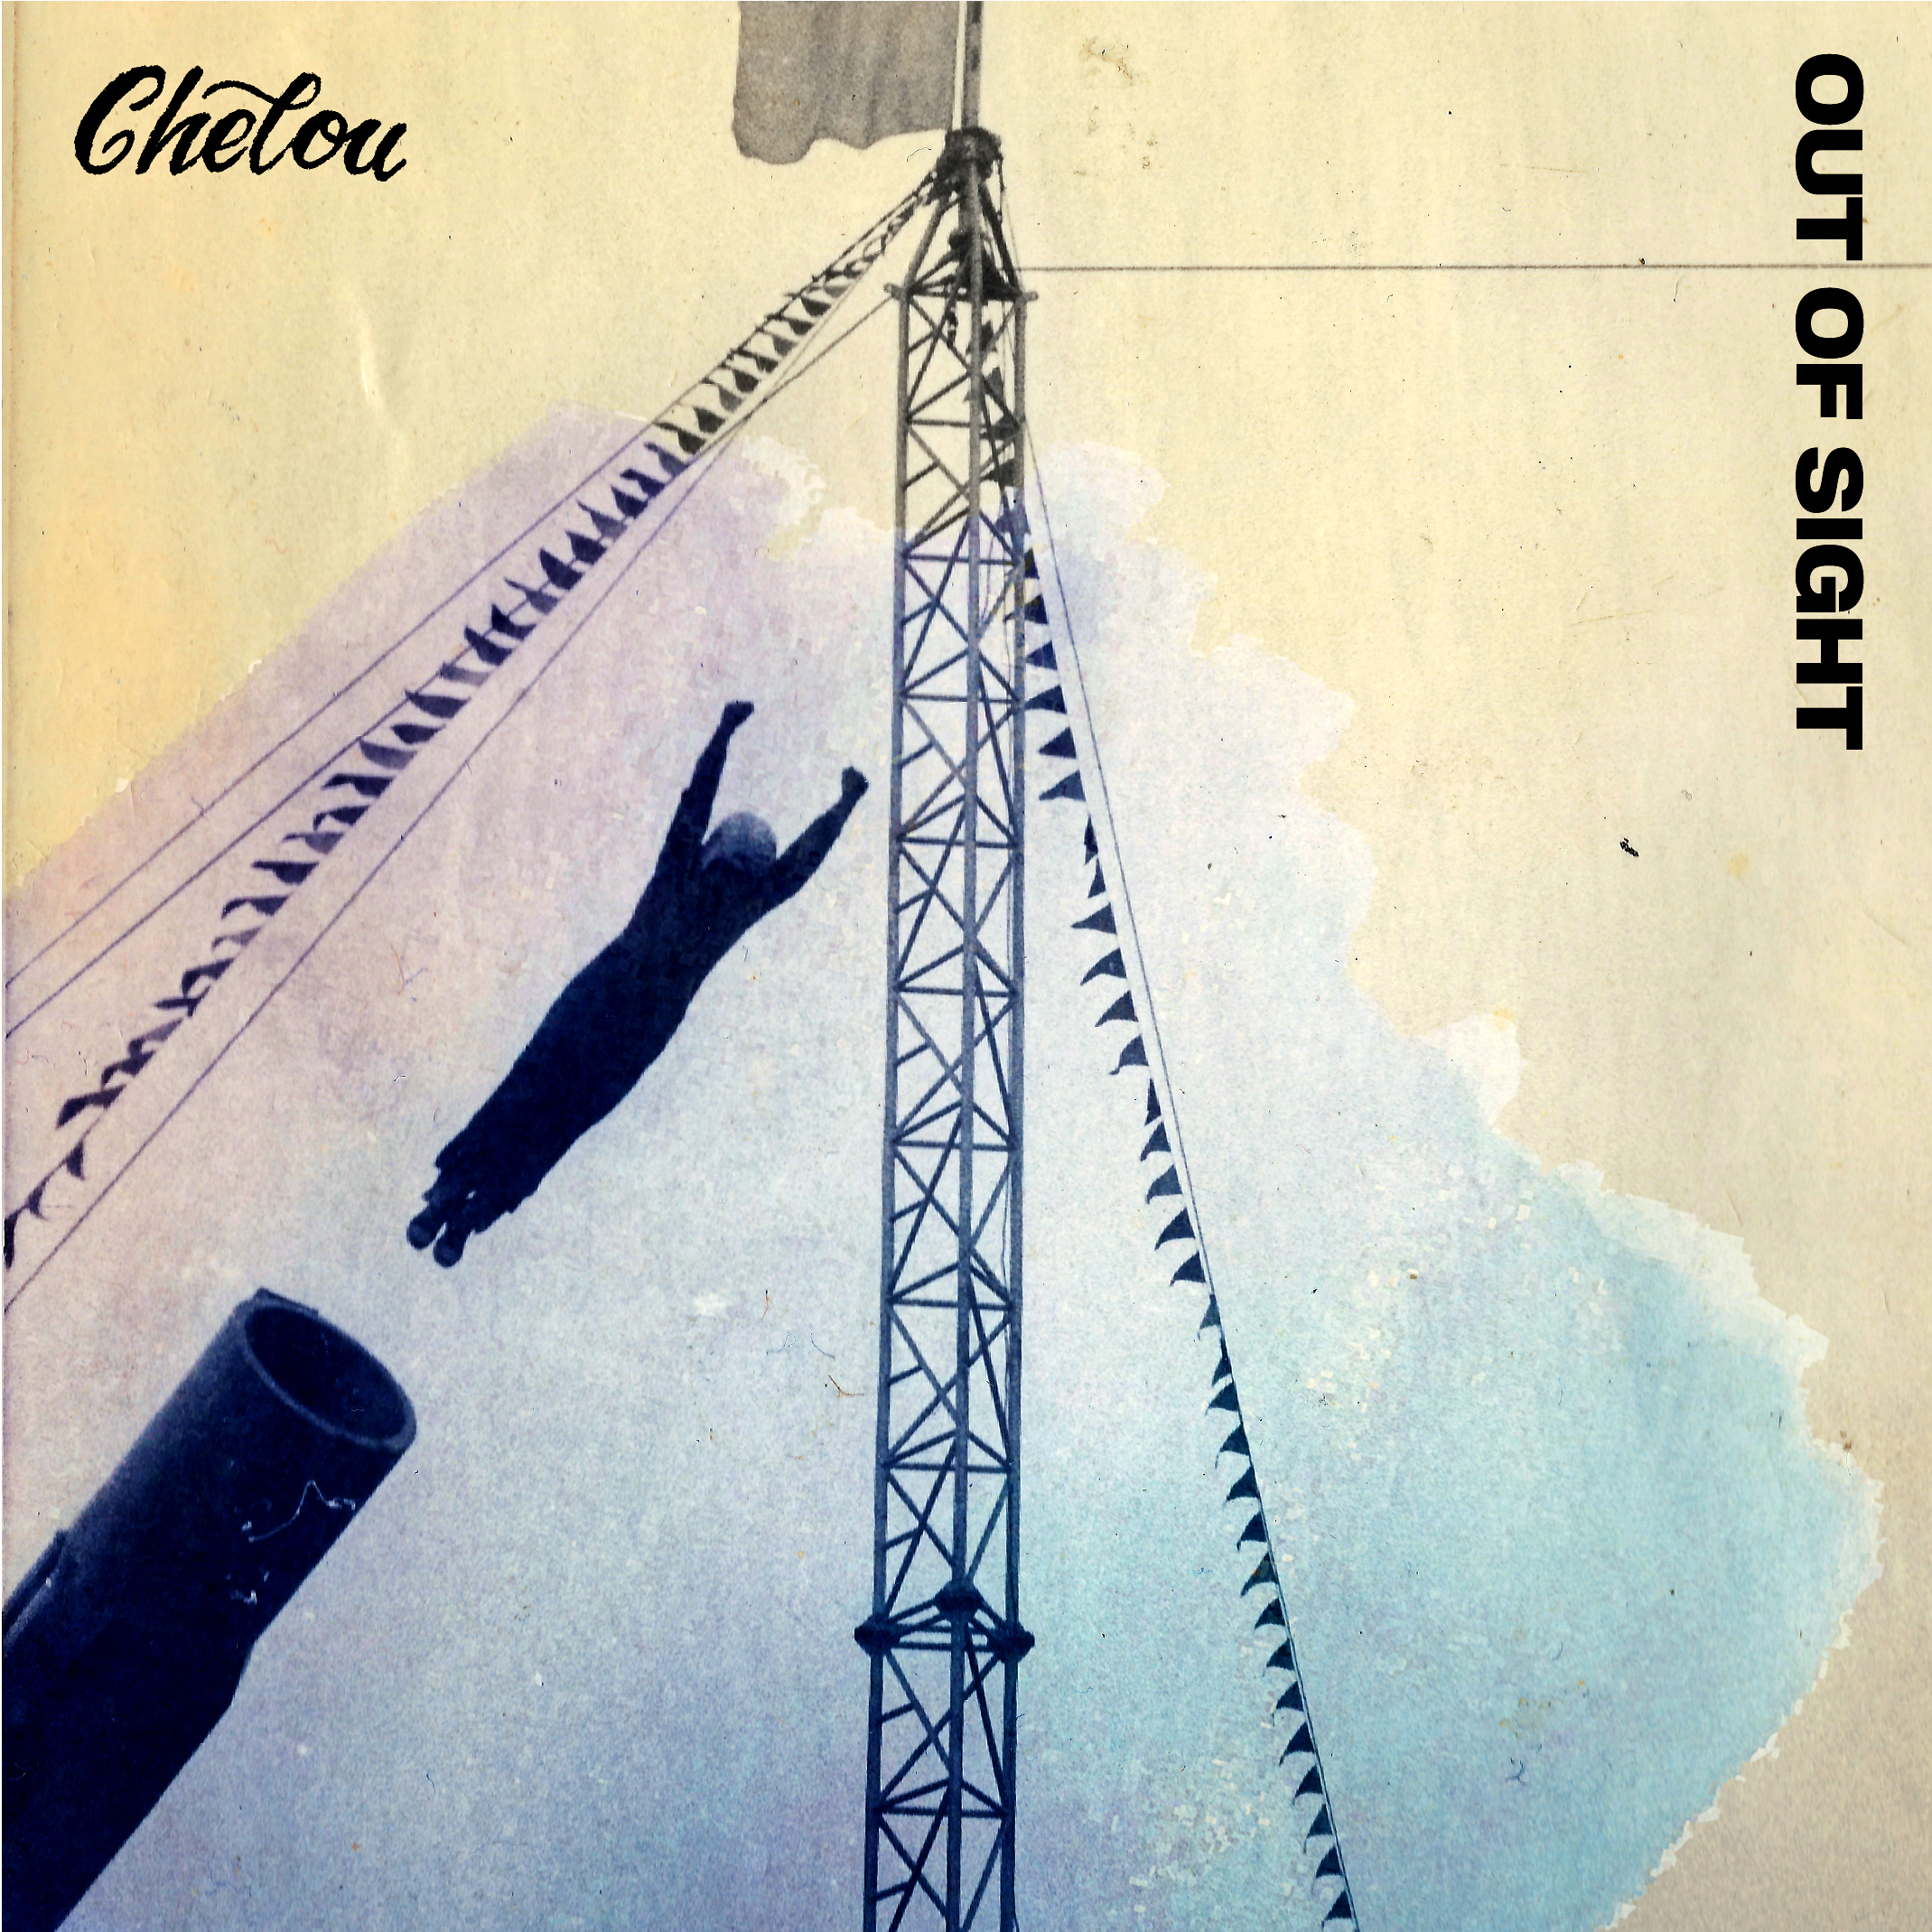 chelou Out Of Sight -chronique